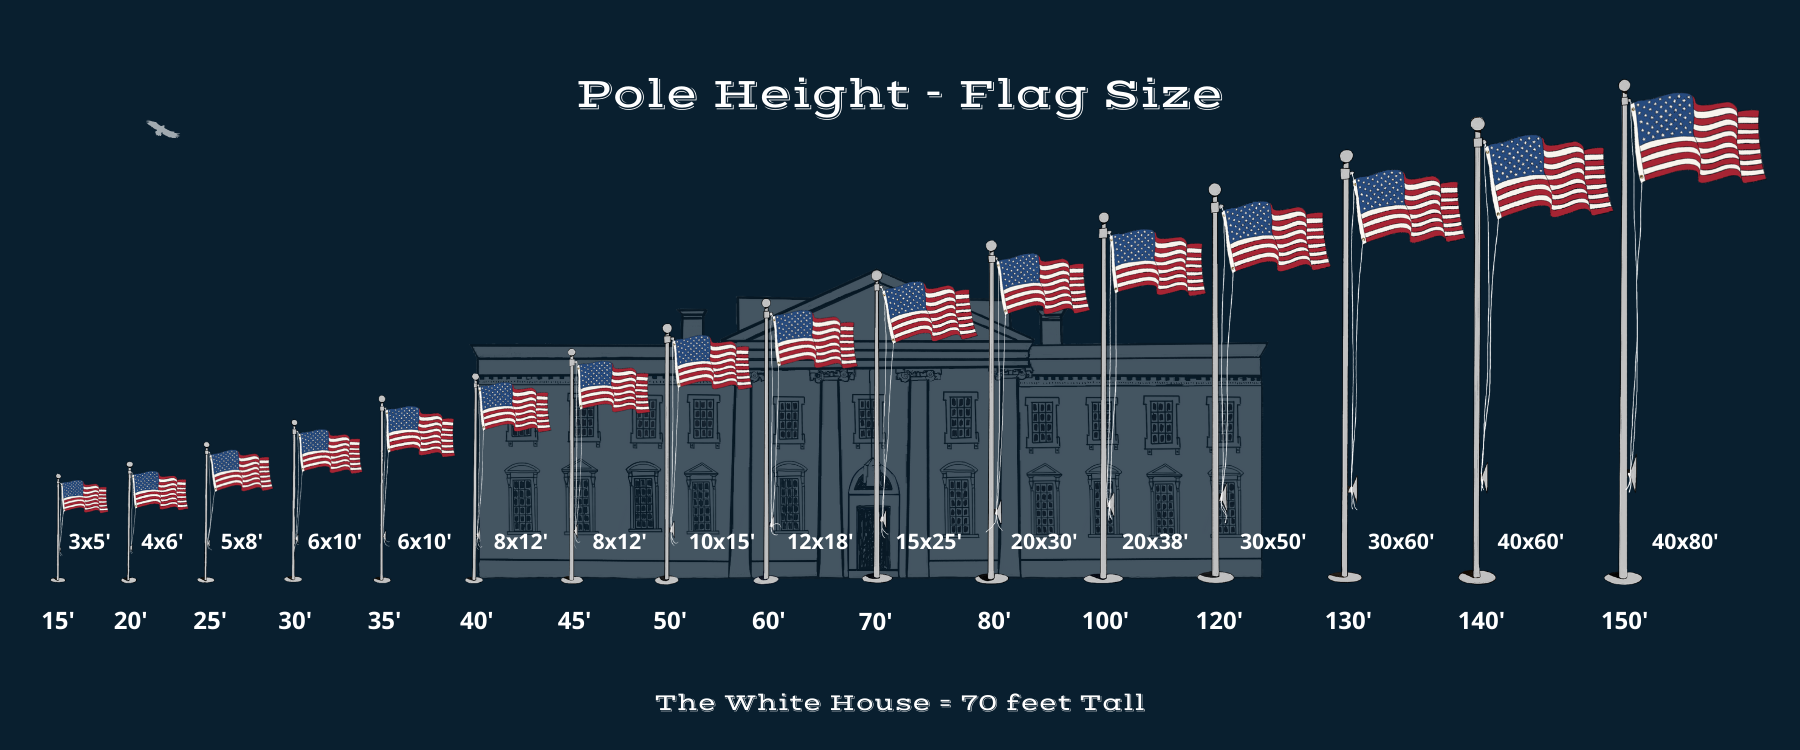 Infographic displaying American flags on poles sizes superimposed over the White House